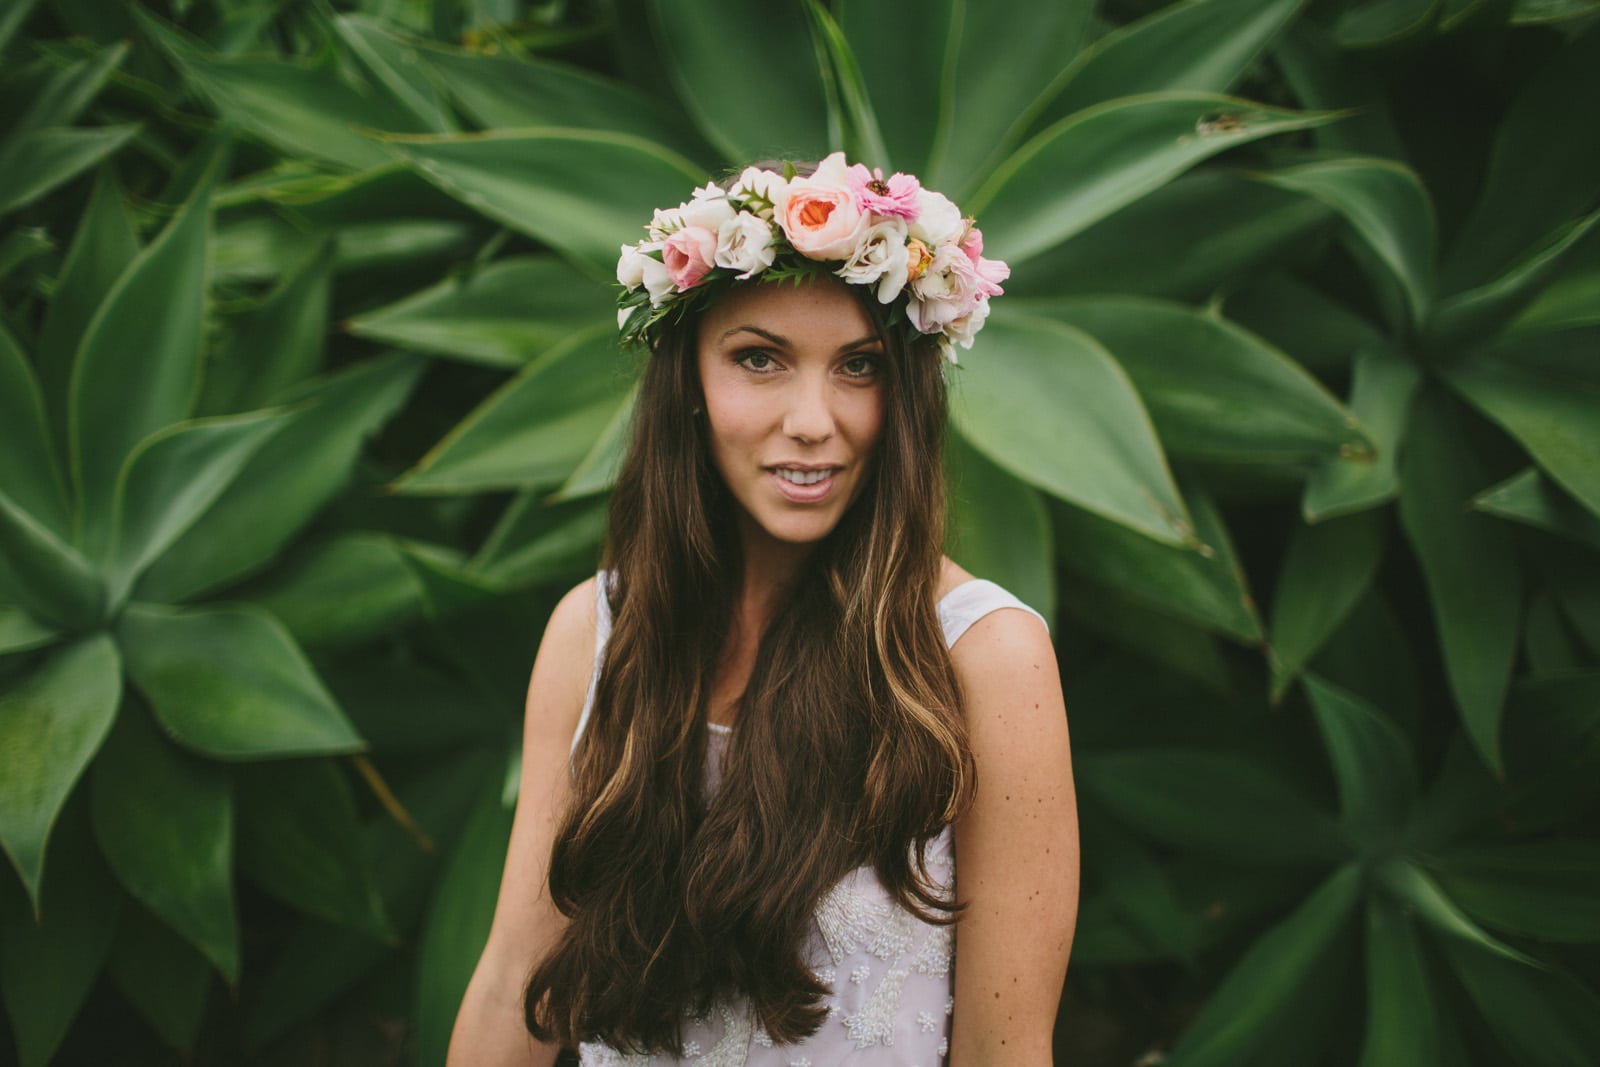 Maui_Wedding_Wailea_Kapalua_Hawaii_Photographer_026